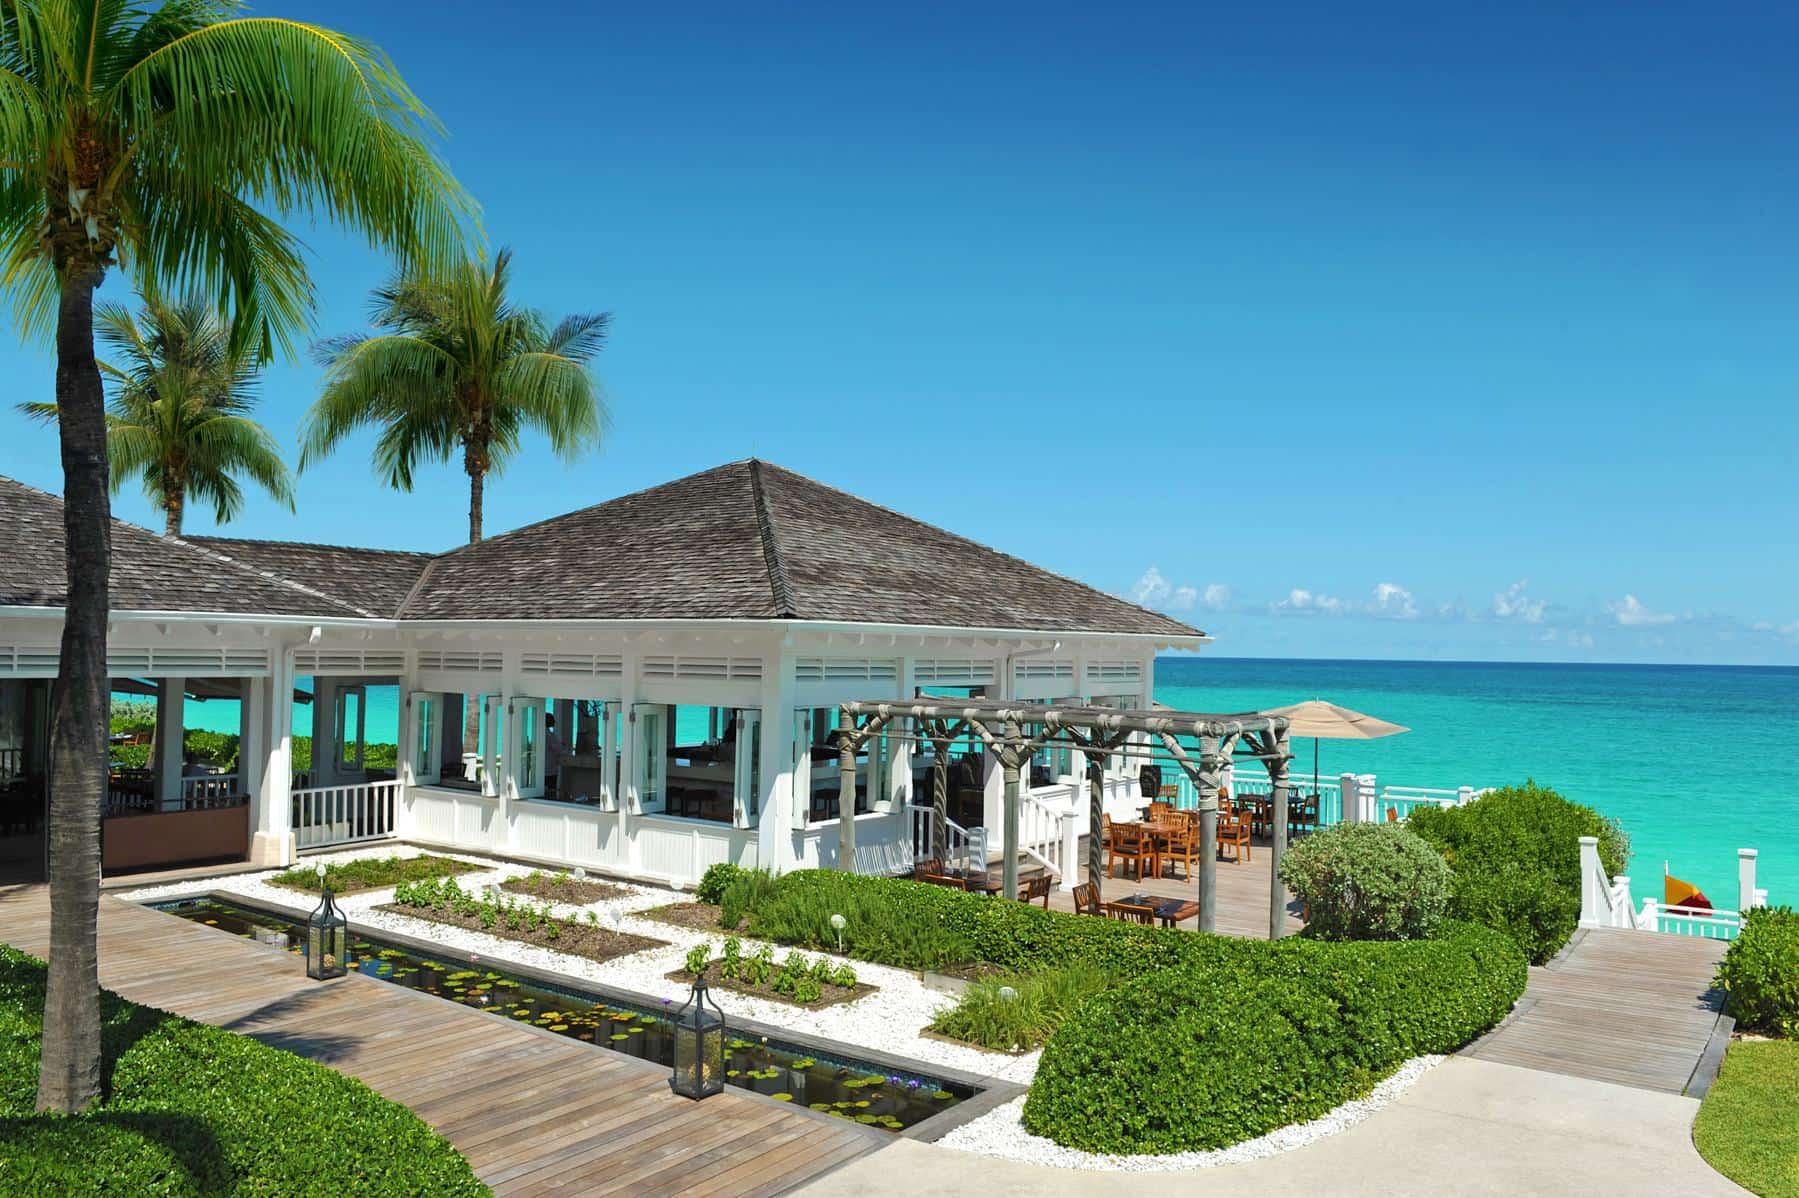 5 Reasons Why the Bahamas are Perfect for a Luxury Holiday